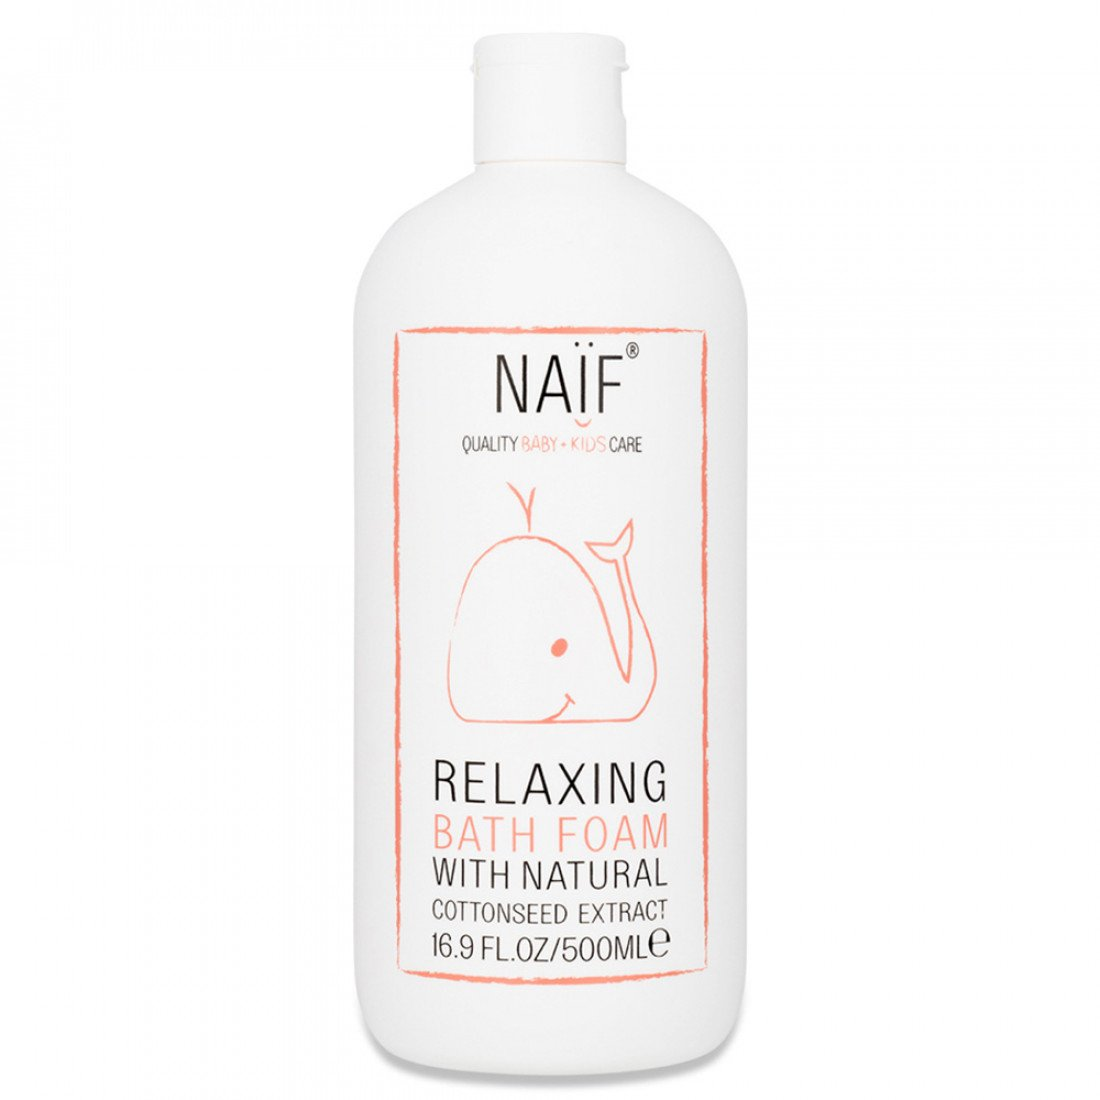 NAIF RELAXING BATH FOAM